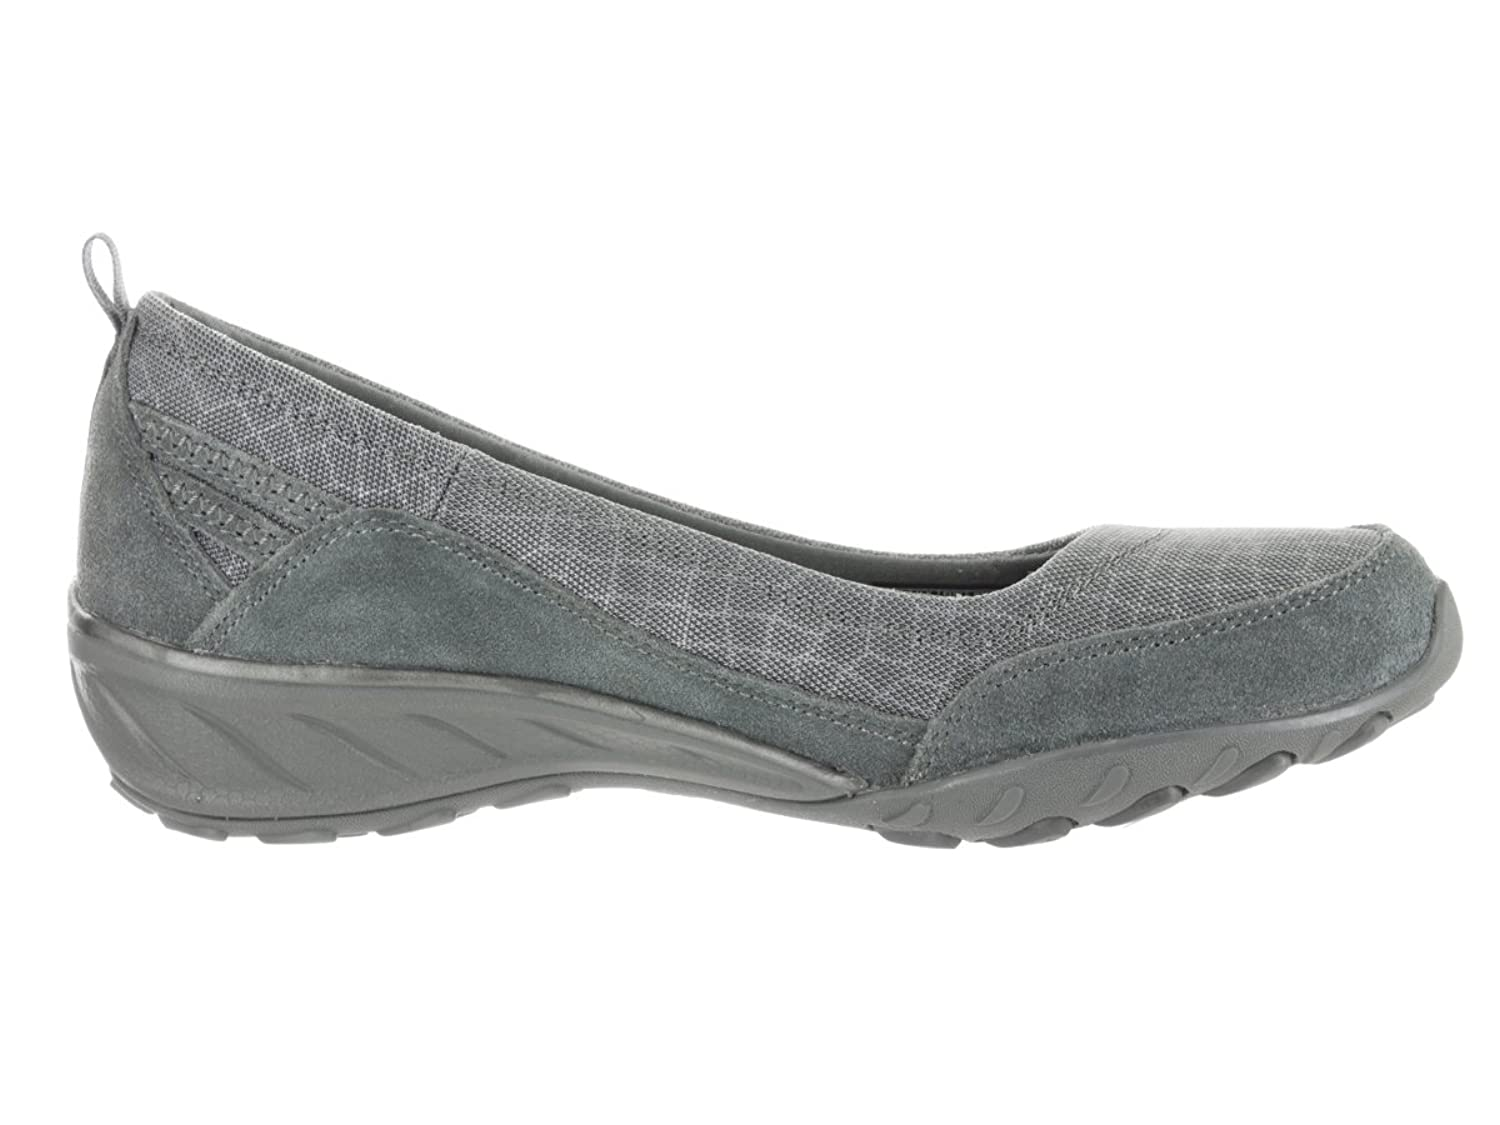 SkechersSavvy - Radiant - Mary Jane mujer , color gris, talla 37,5 EU (M)